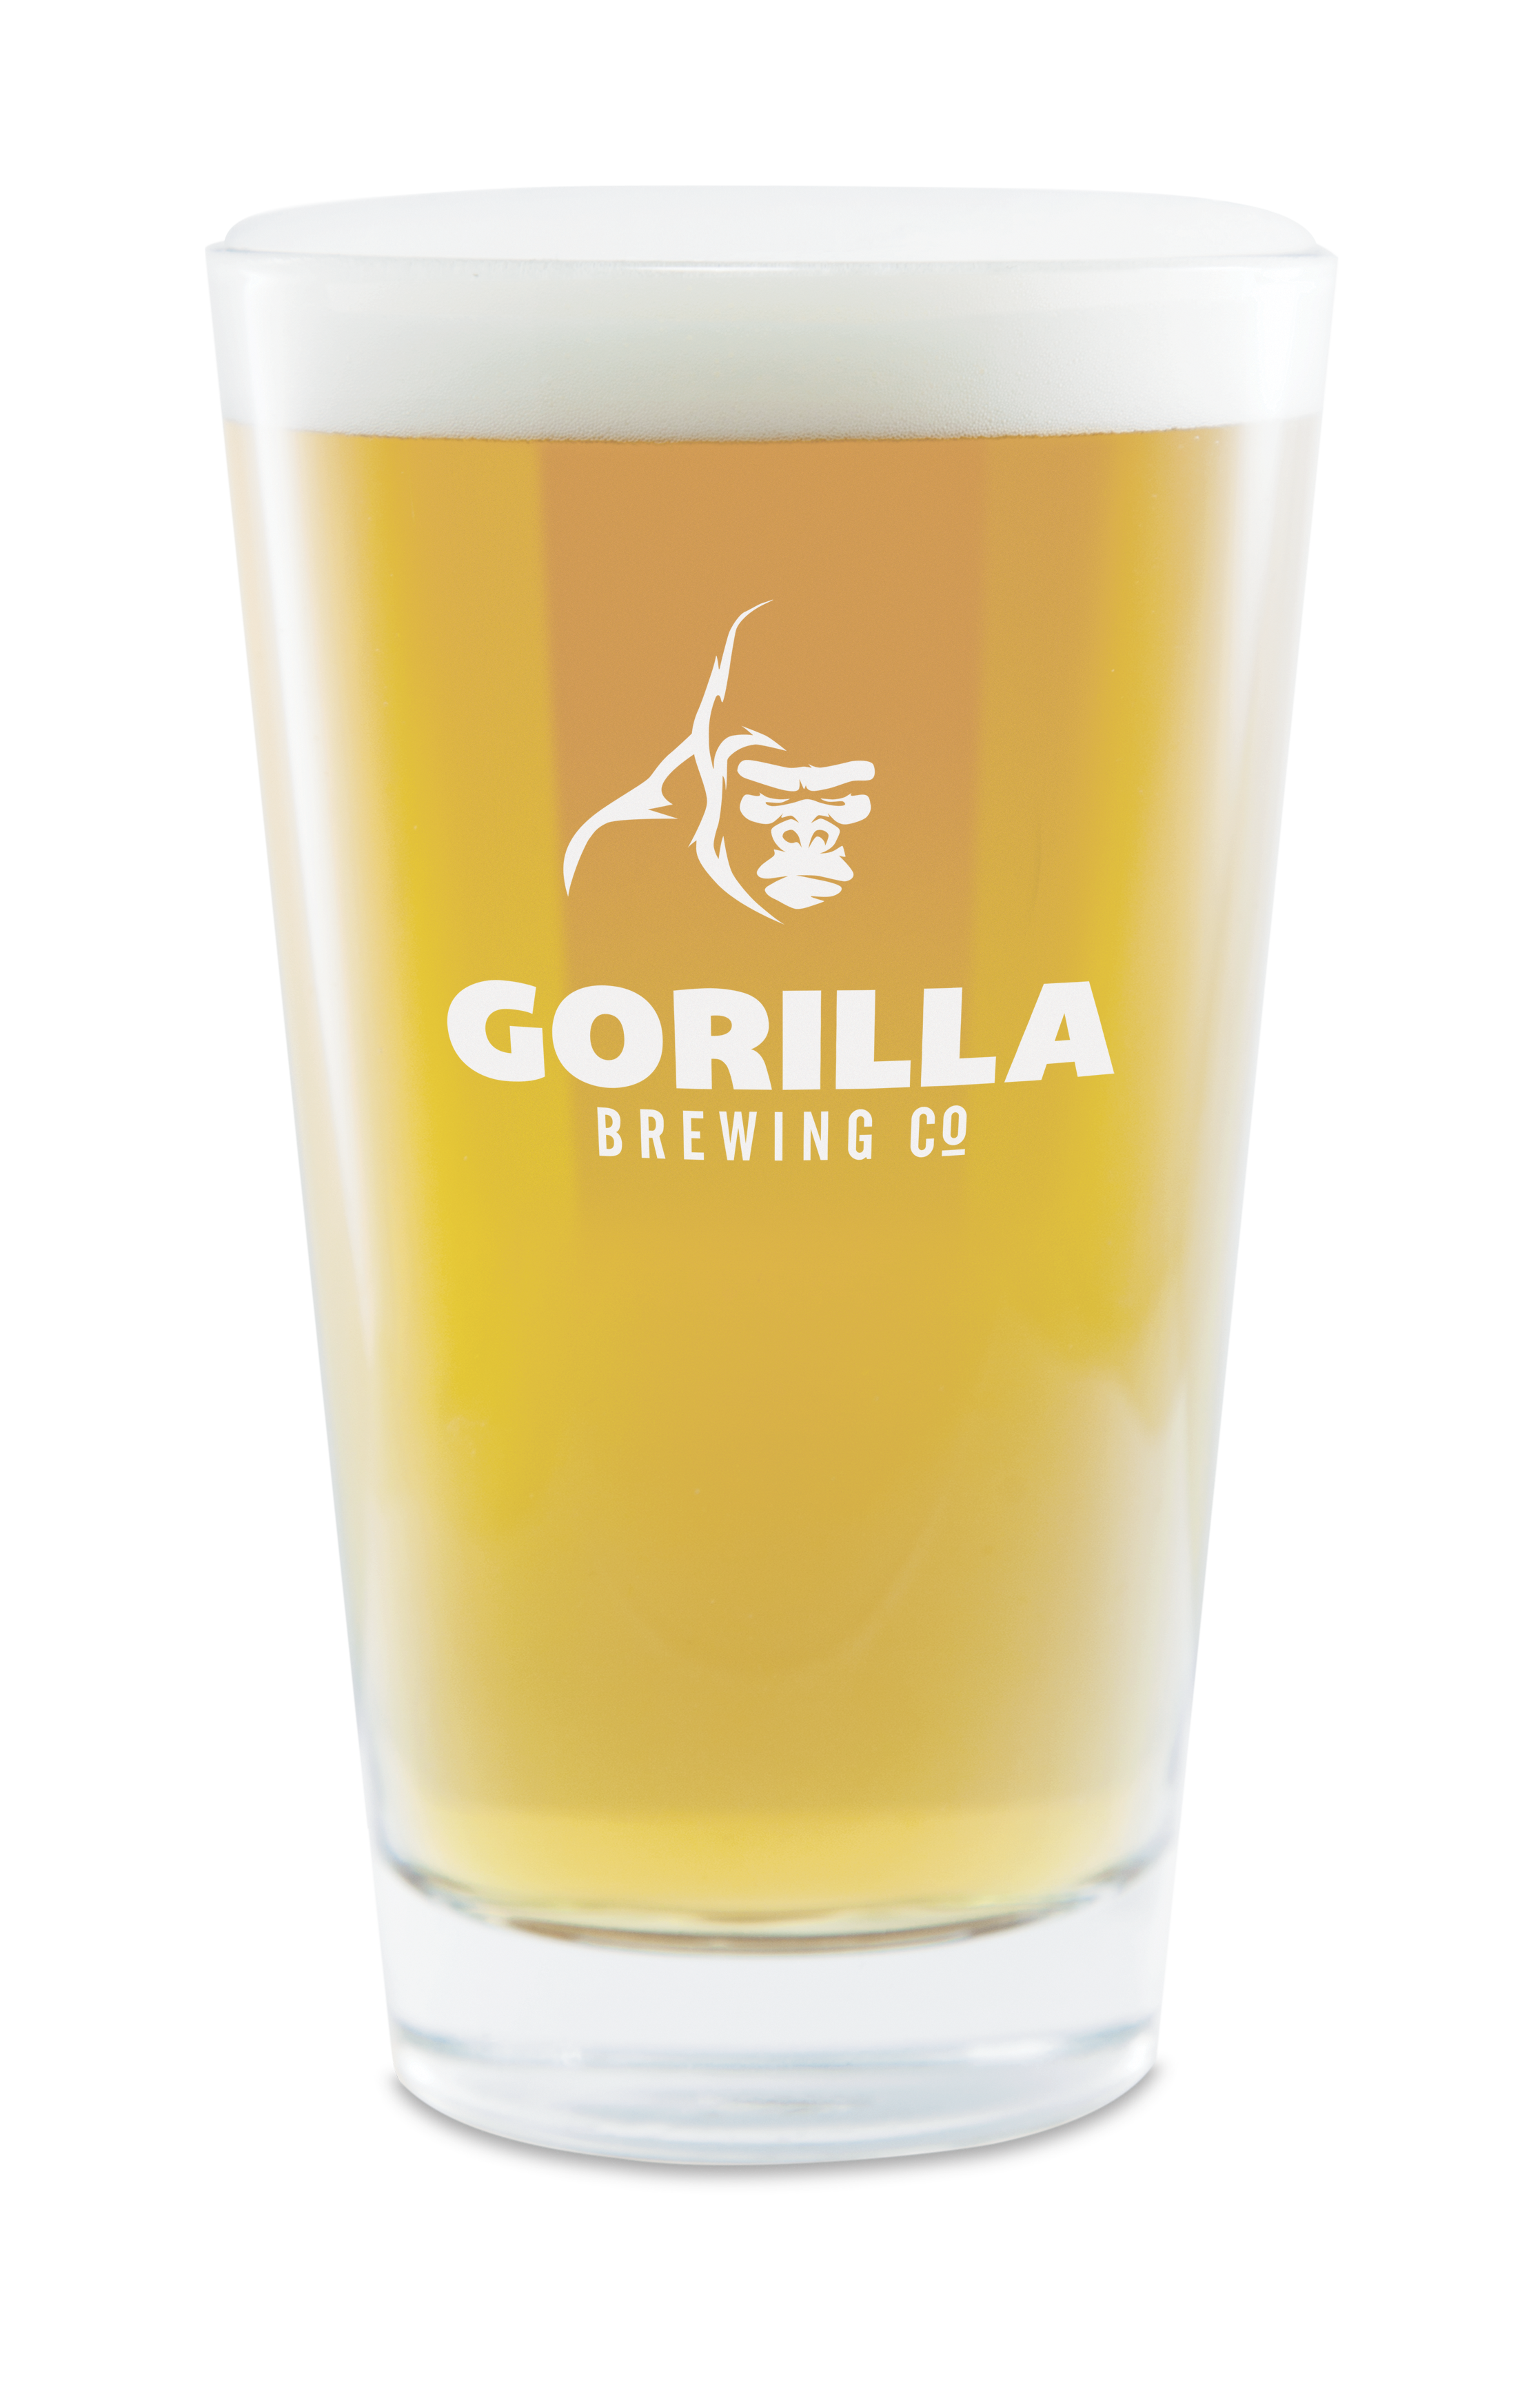 GORILLAGER - 고릴라거abv 4.5% ibu 8A LIGHT, CRISP, AND EASY DRINKING LAGERSmooth, crisp, and pleasantly dry, with a touch of citrus. A great little session beer.가벼움, 부드러움, 시원함또끝에오는기분좋은드라이함까지. 가볍고간편한한잔을원하신다면고릴라의라거, 고릴라거를맛보세요.Wholesale: available (20l keg)